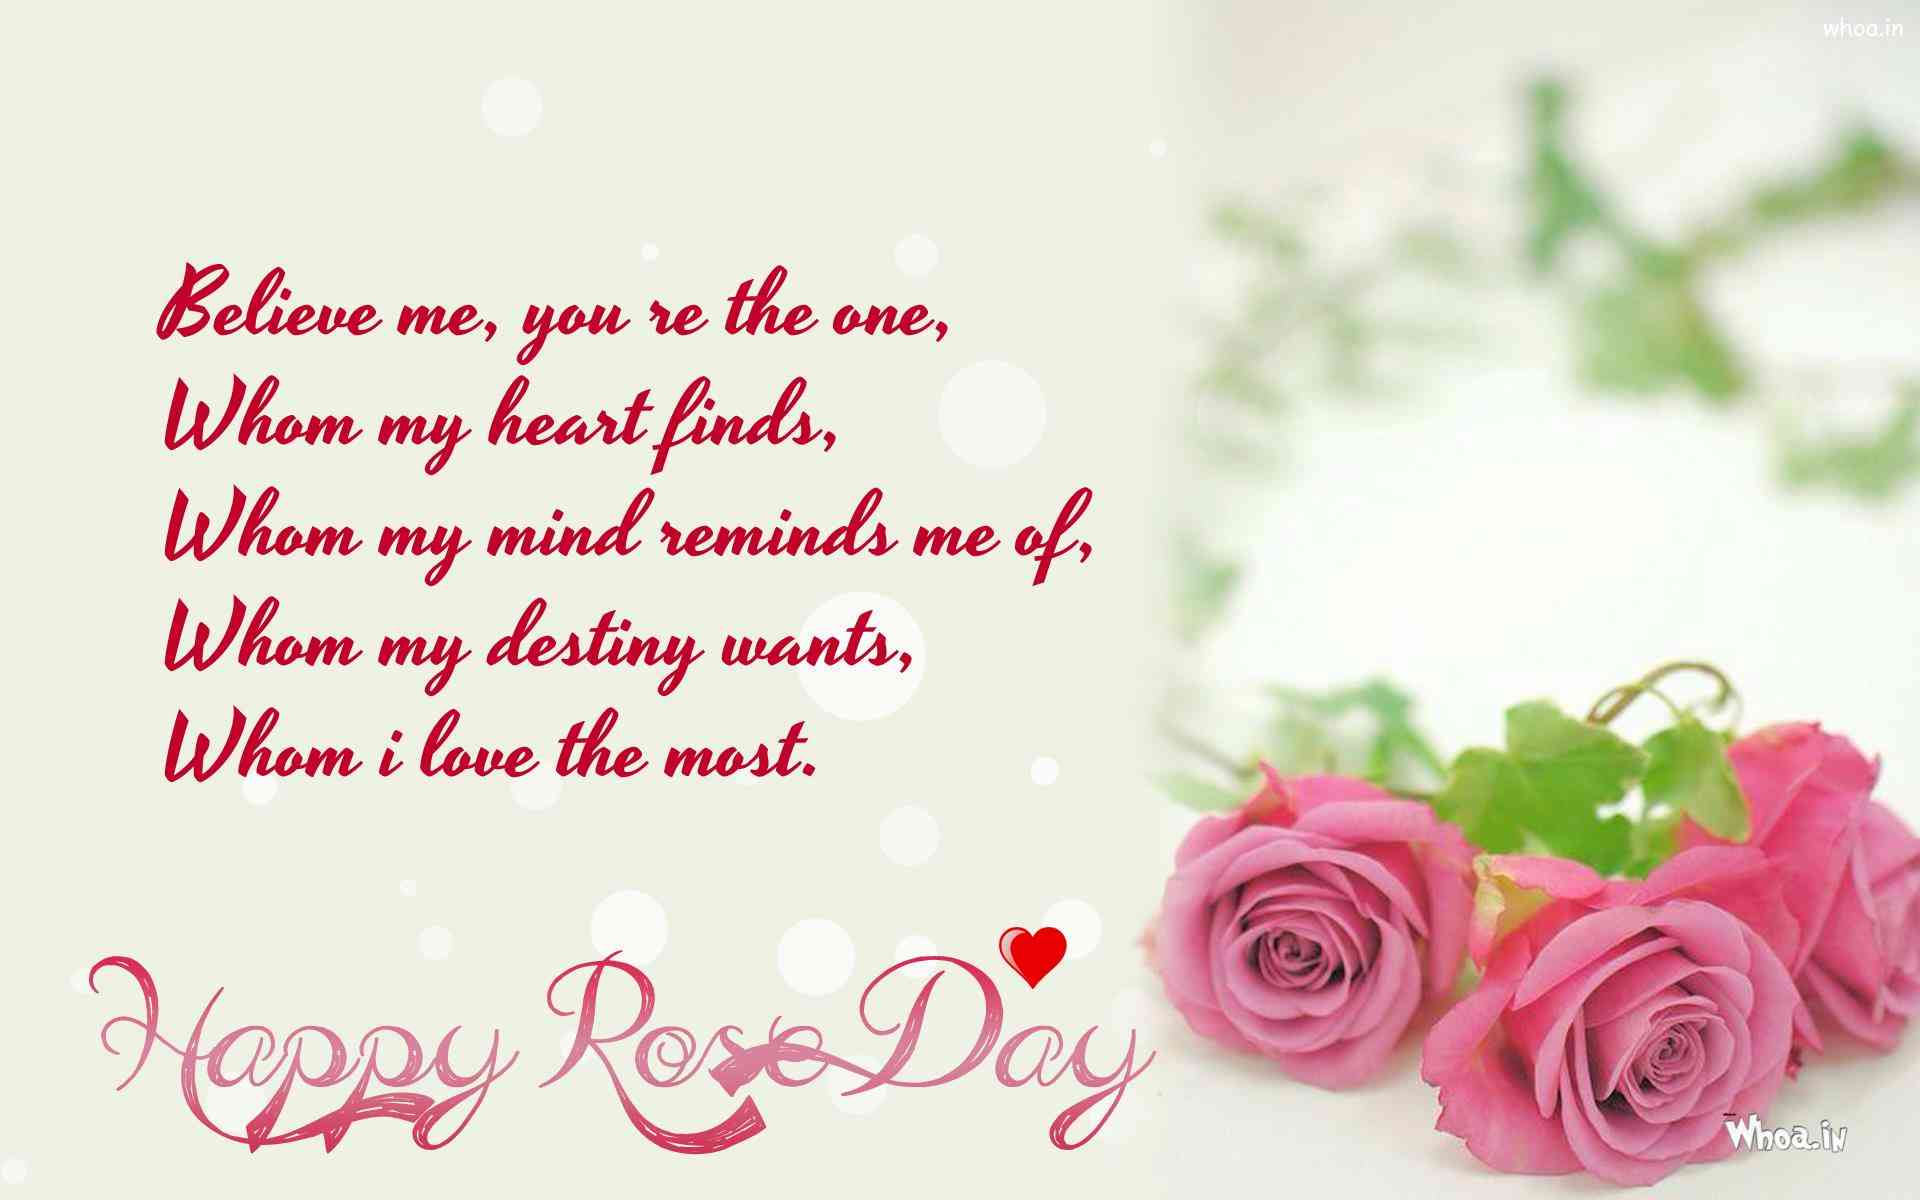 rose day wallpapers in high definition